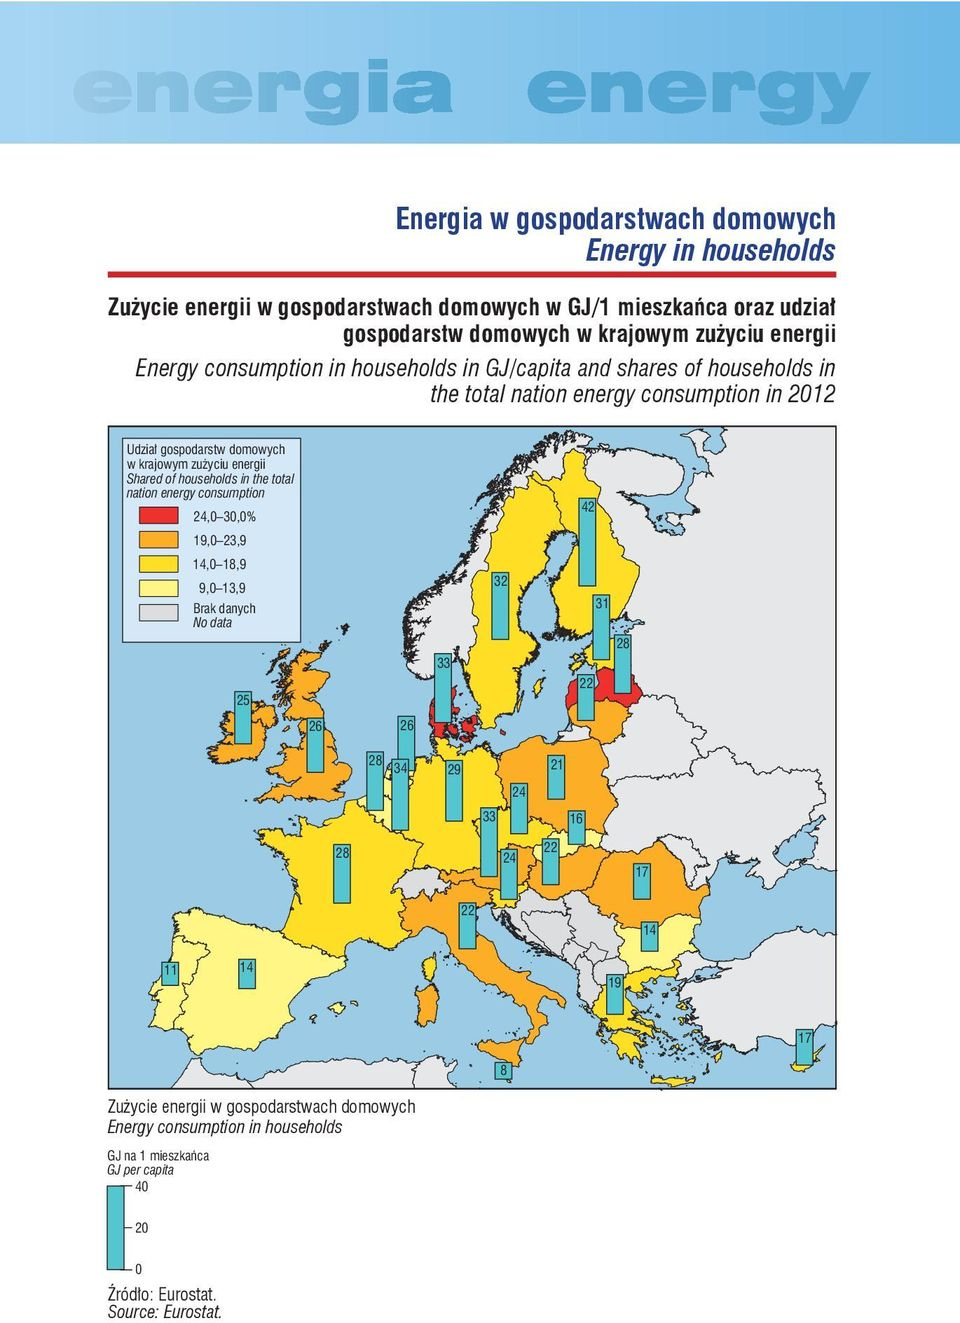 energii Shared of households in the total nation energy consumption 24, 3,% 42 19, 23,9 14, 18,9 9, 13,9 Brak danych No data 25 33 32 31 28 22 26 26 28 34 29 21 24 33